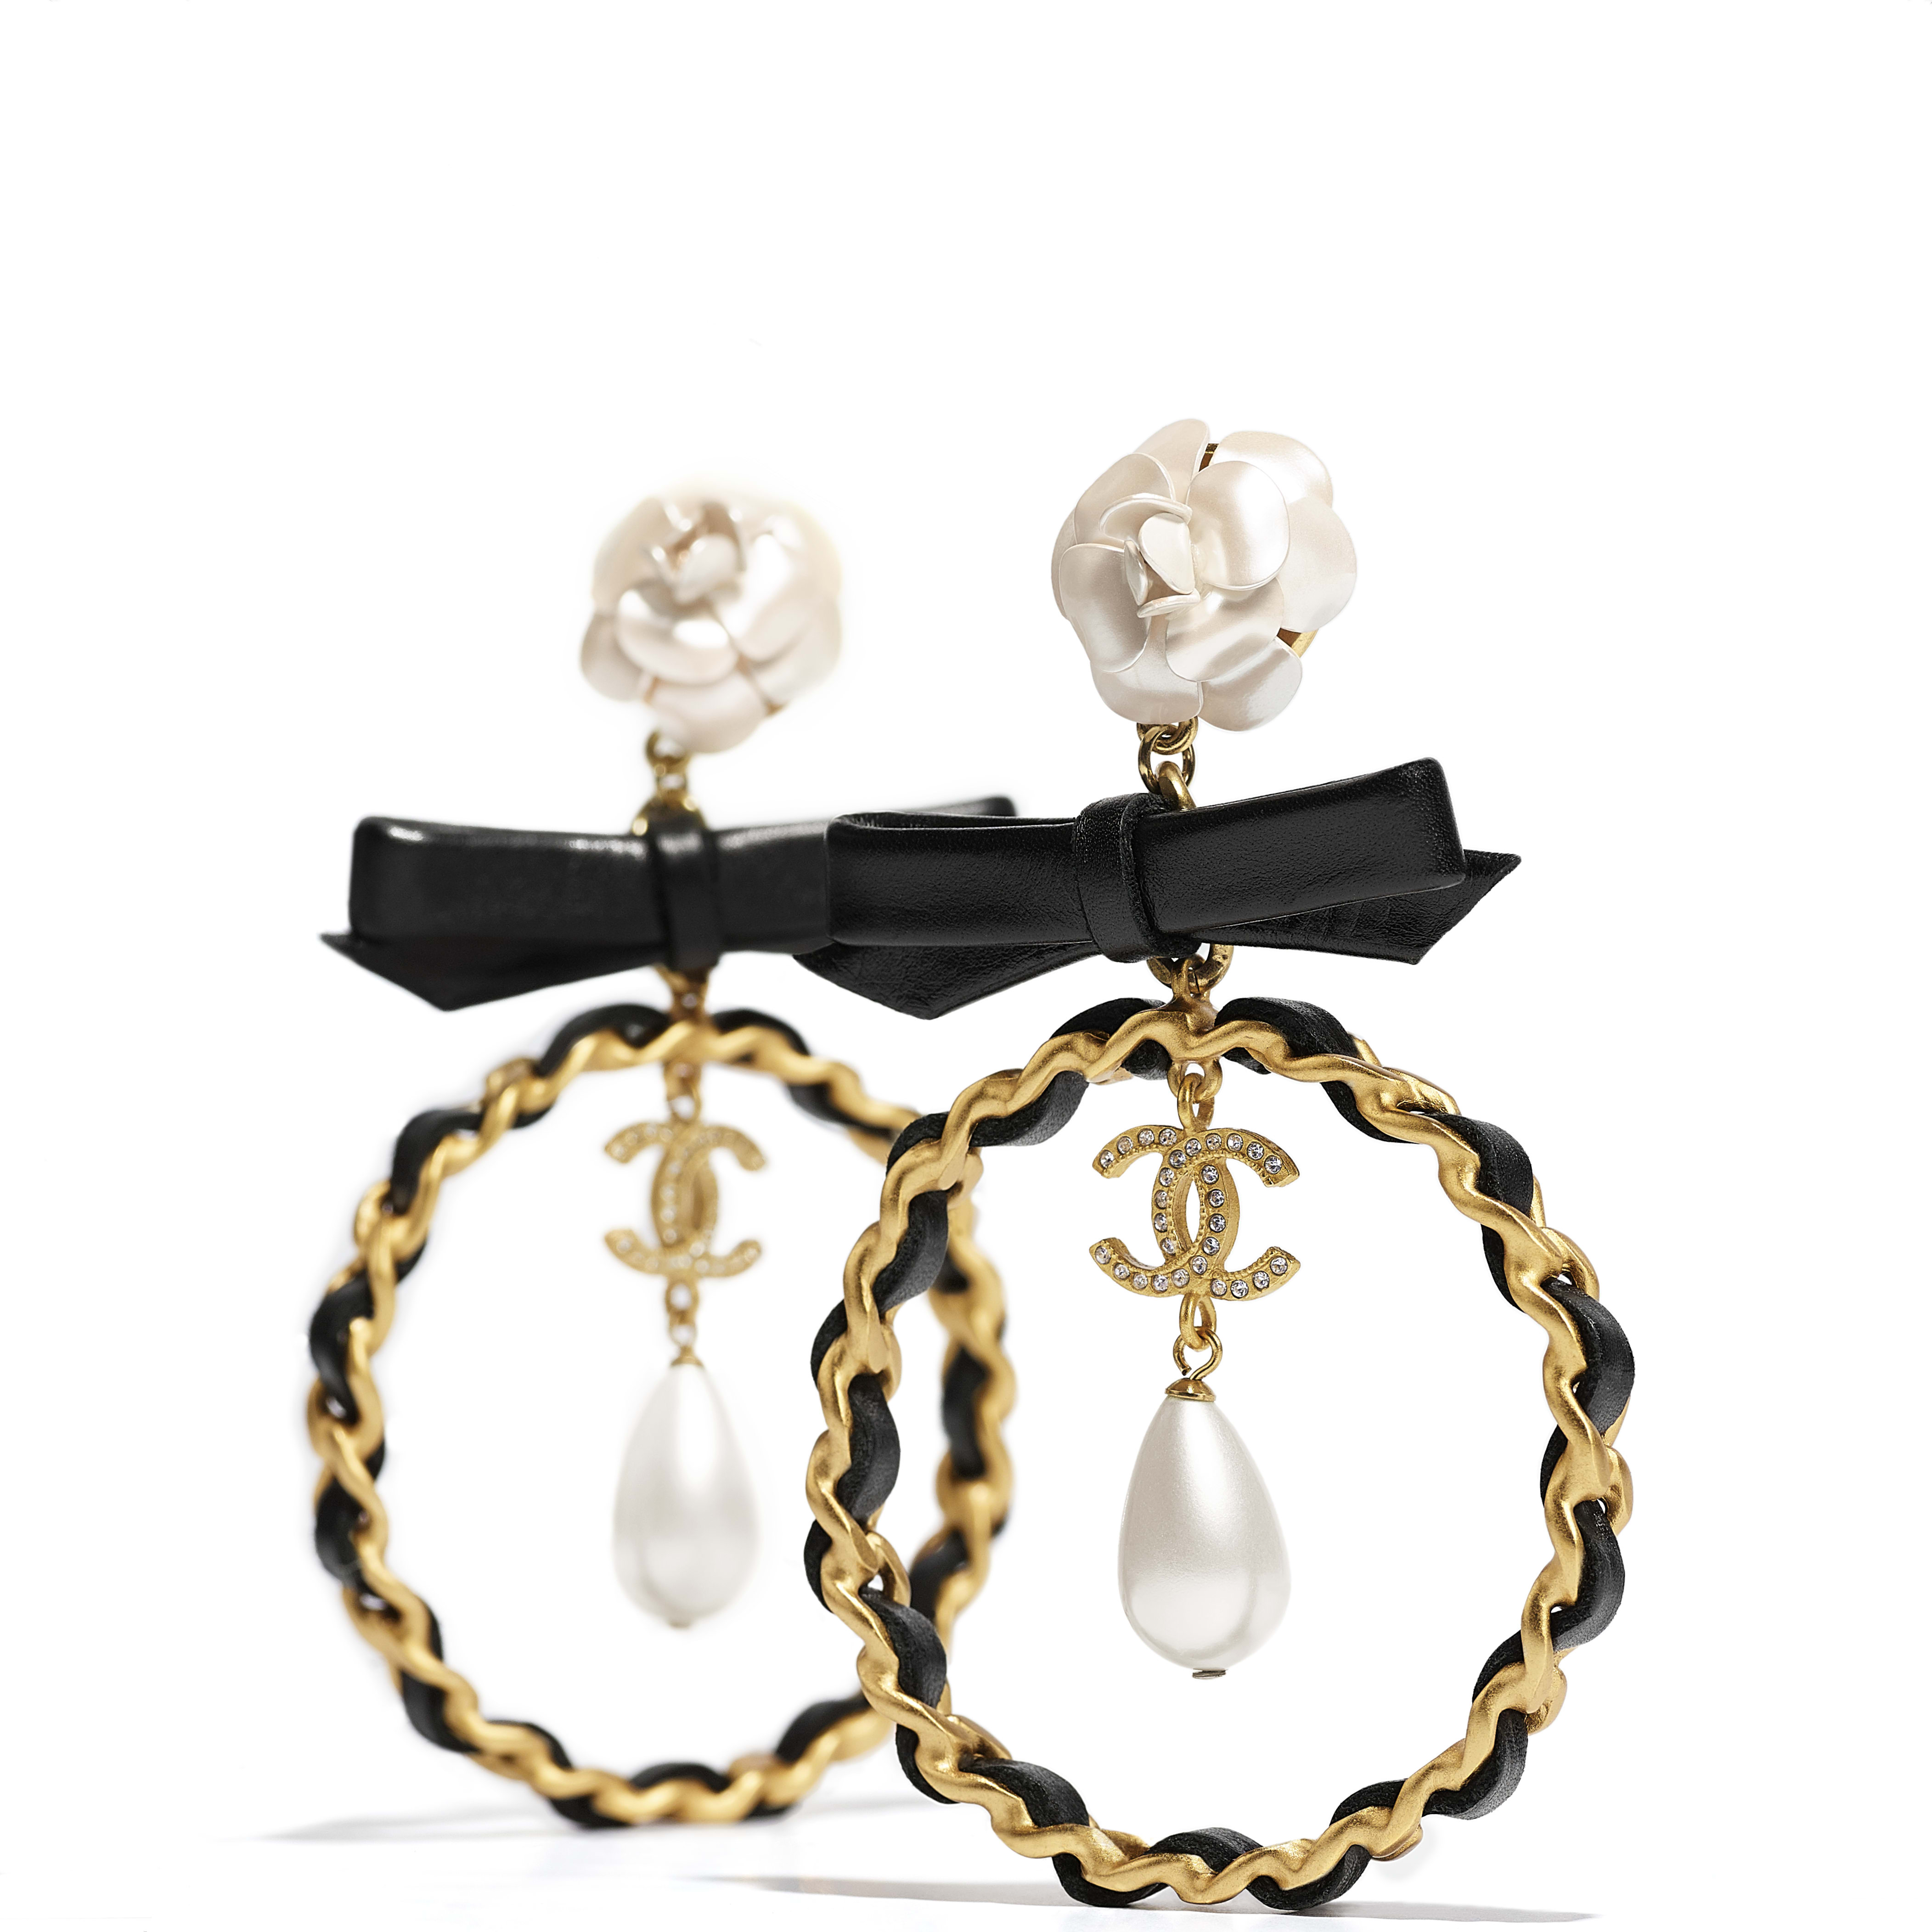 Earrings - Gold, Pearly White, Black & Crystal - Metal, glass pearls, calfskin & diamanté - CHANEL - Alternative view - see standard sized version